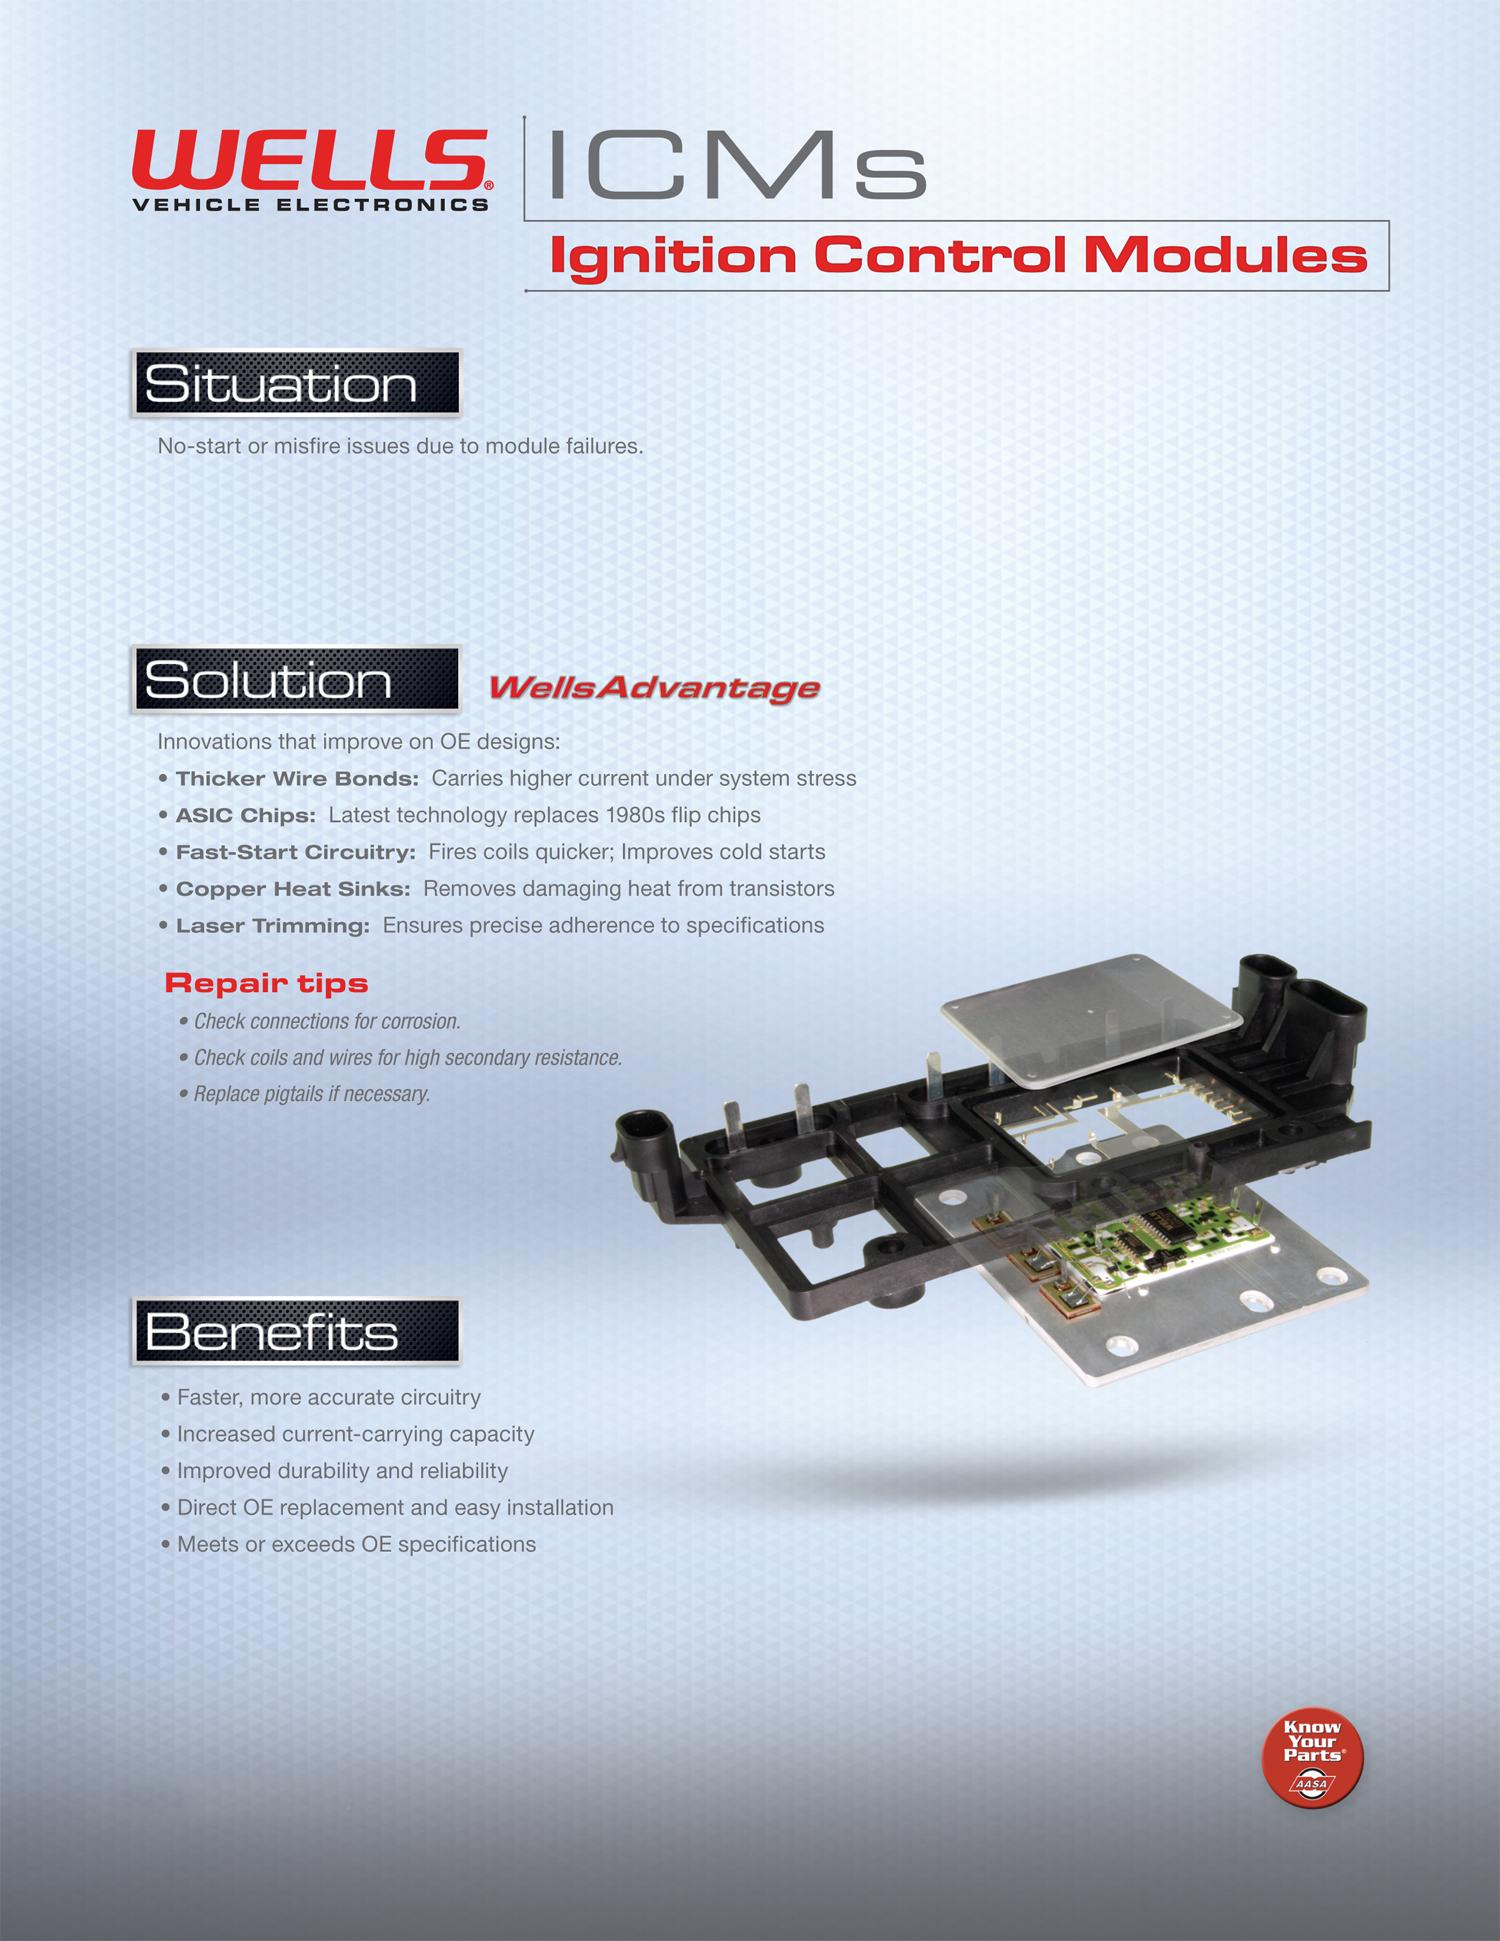 Wells Am104 Ignition Control Module Automotive 86 Volvo Coil Wiring Modules From Vehicle Electronics